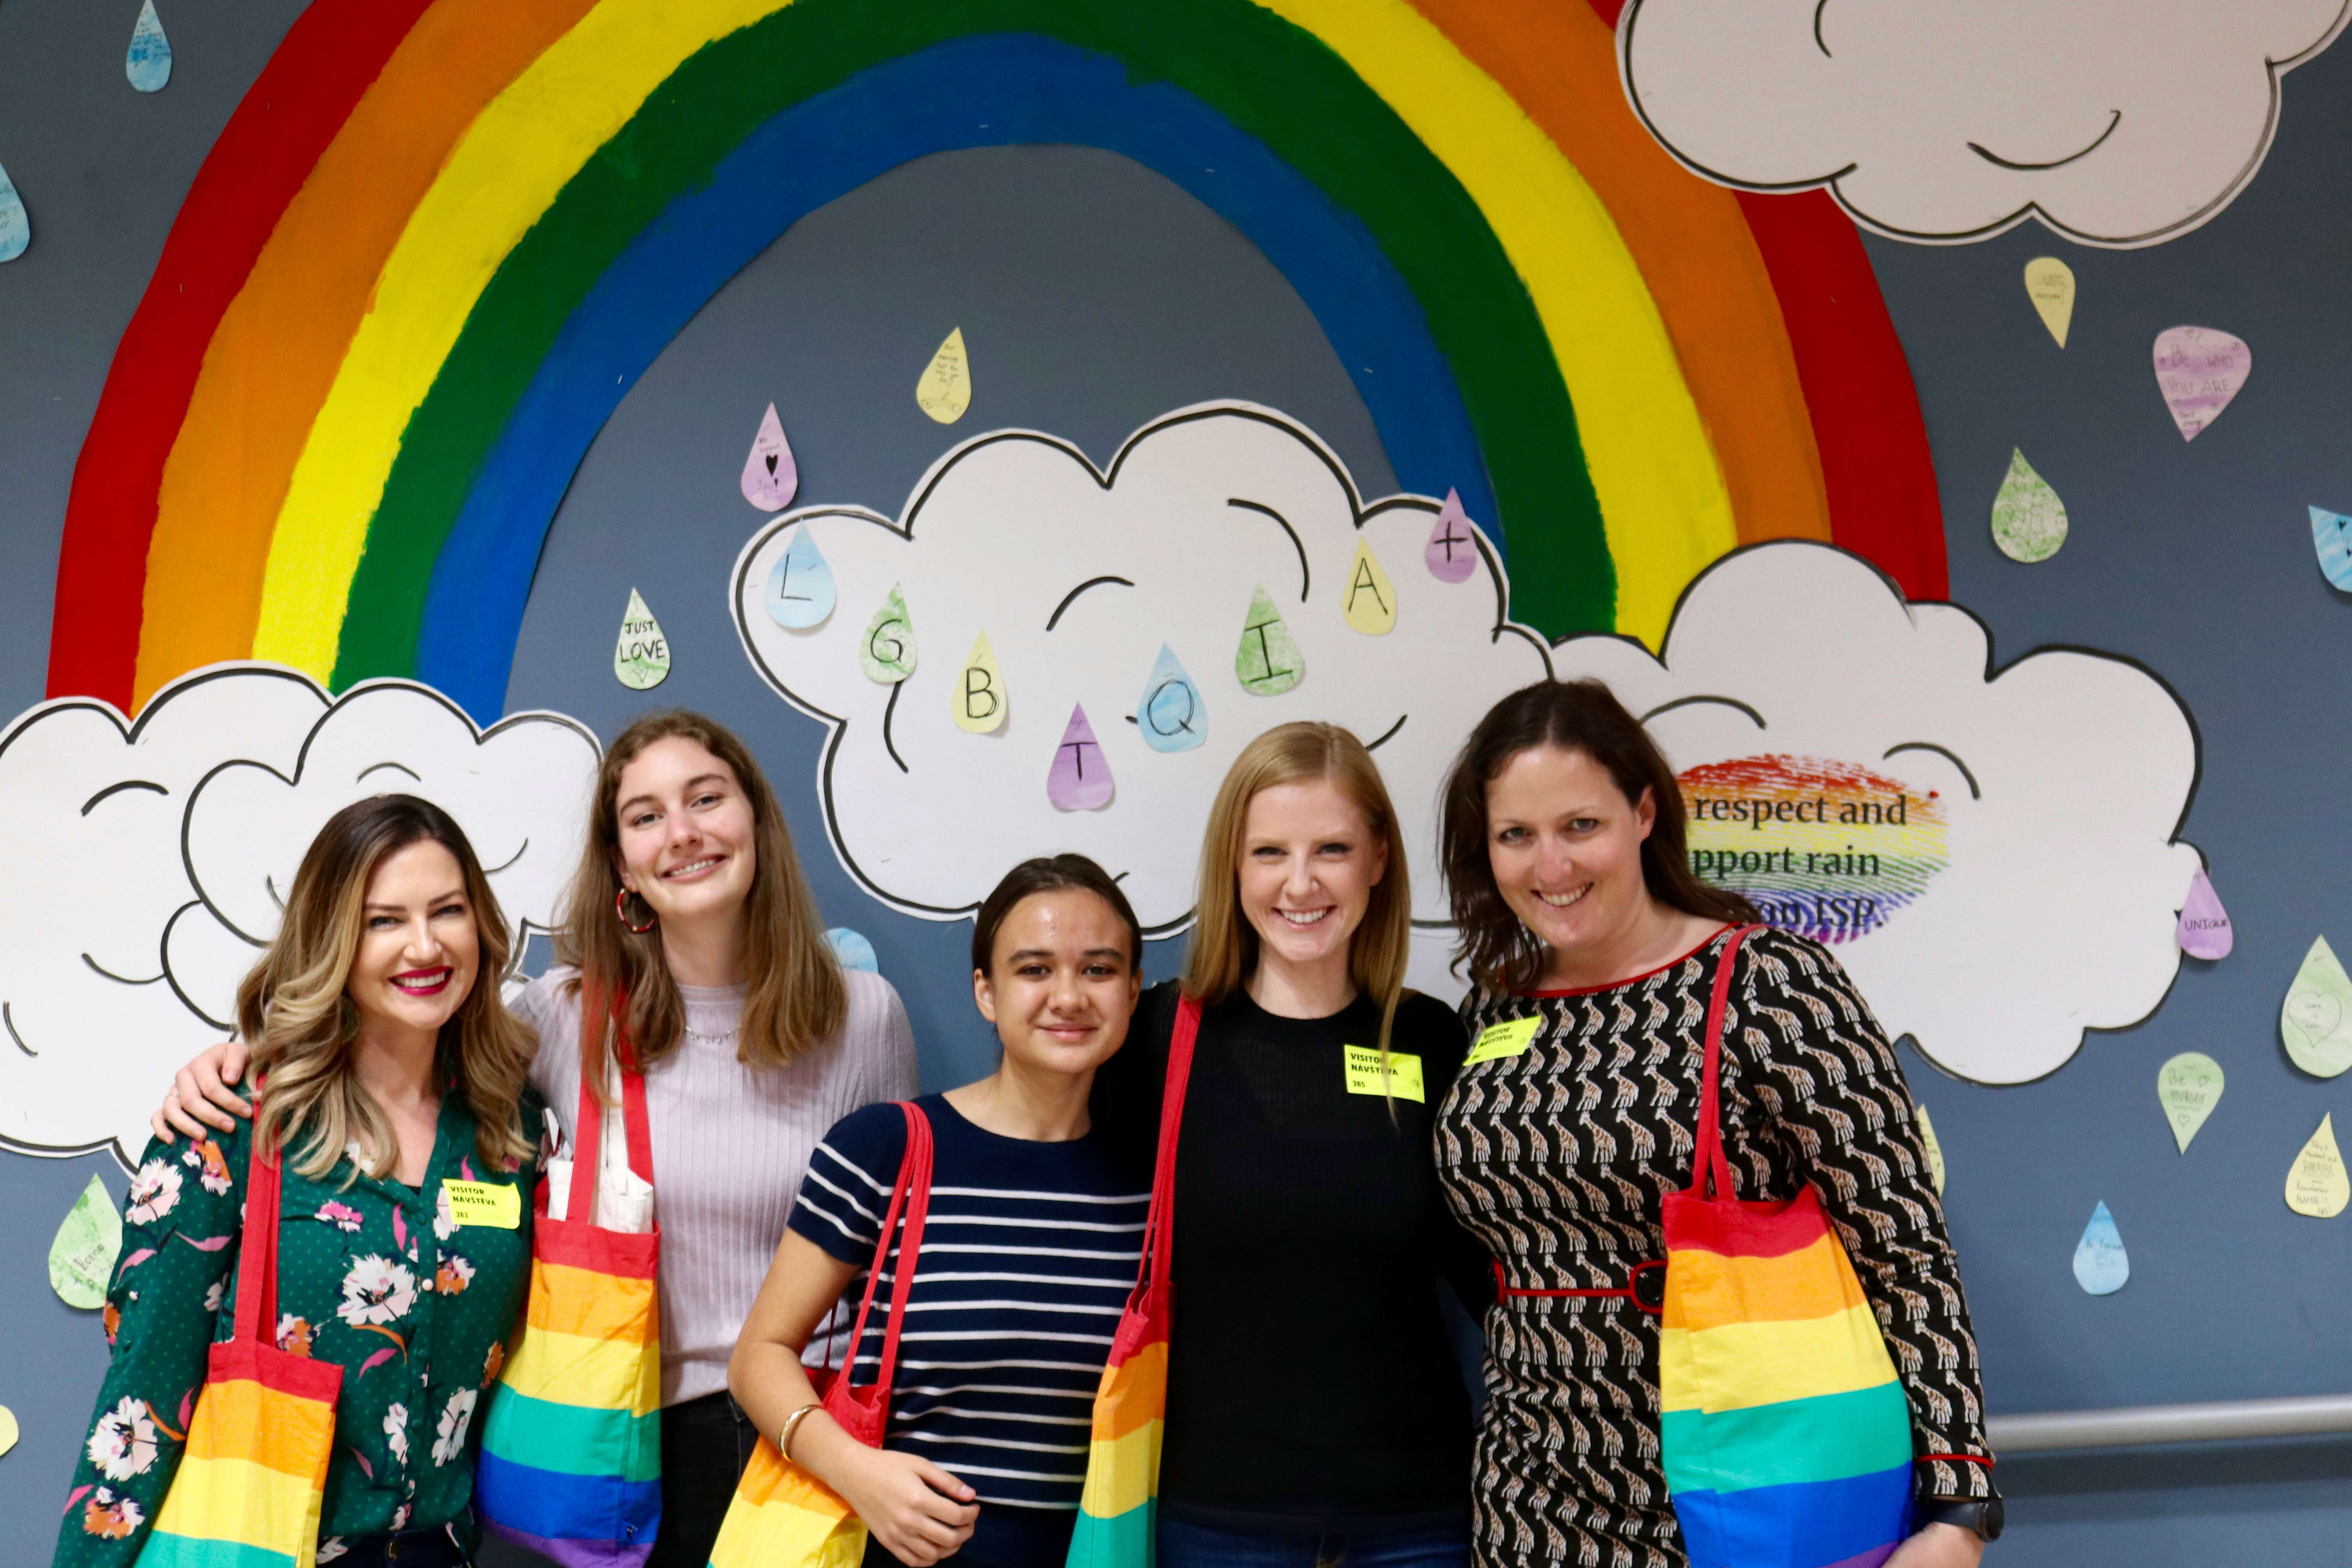 How a trip to ISP could shape the future for AISB's LGBTQ+ community